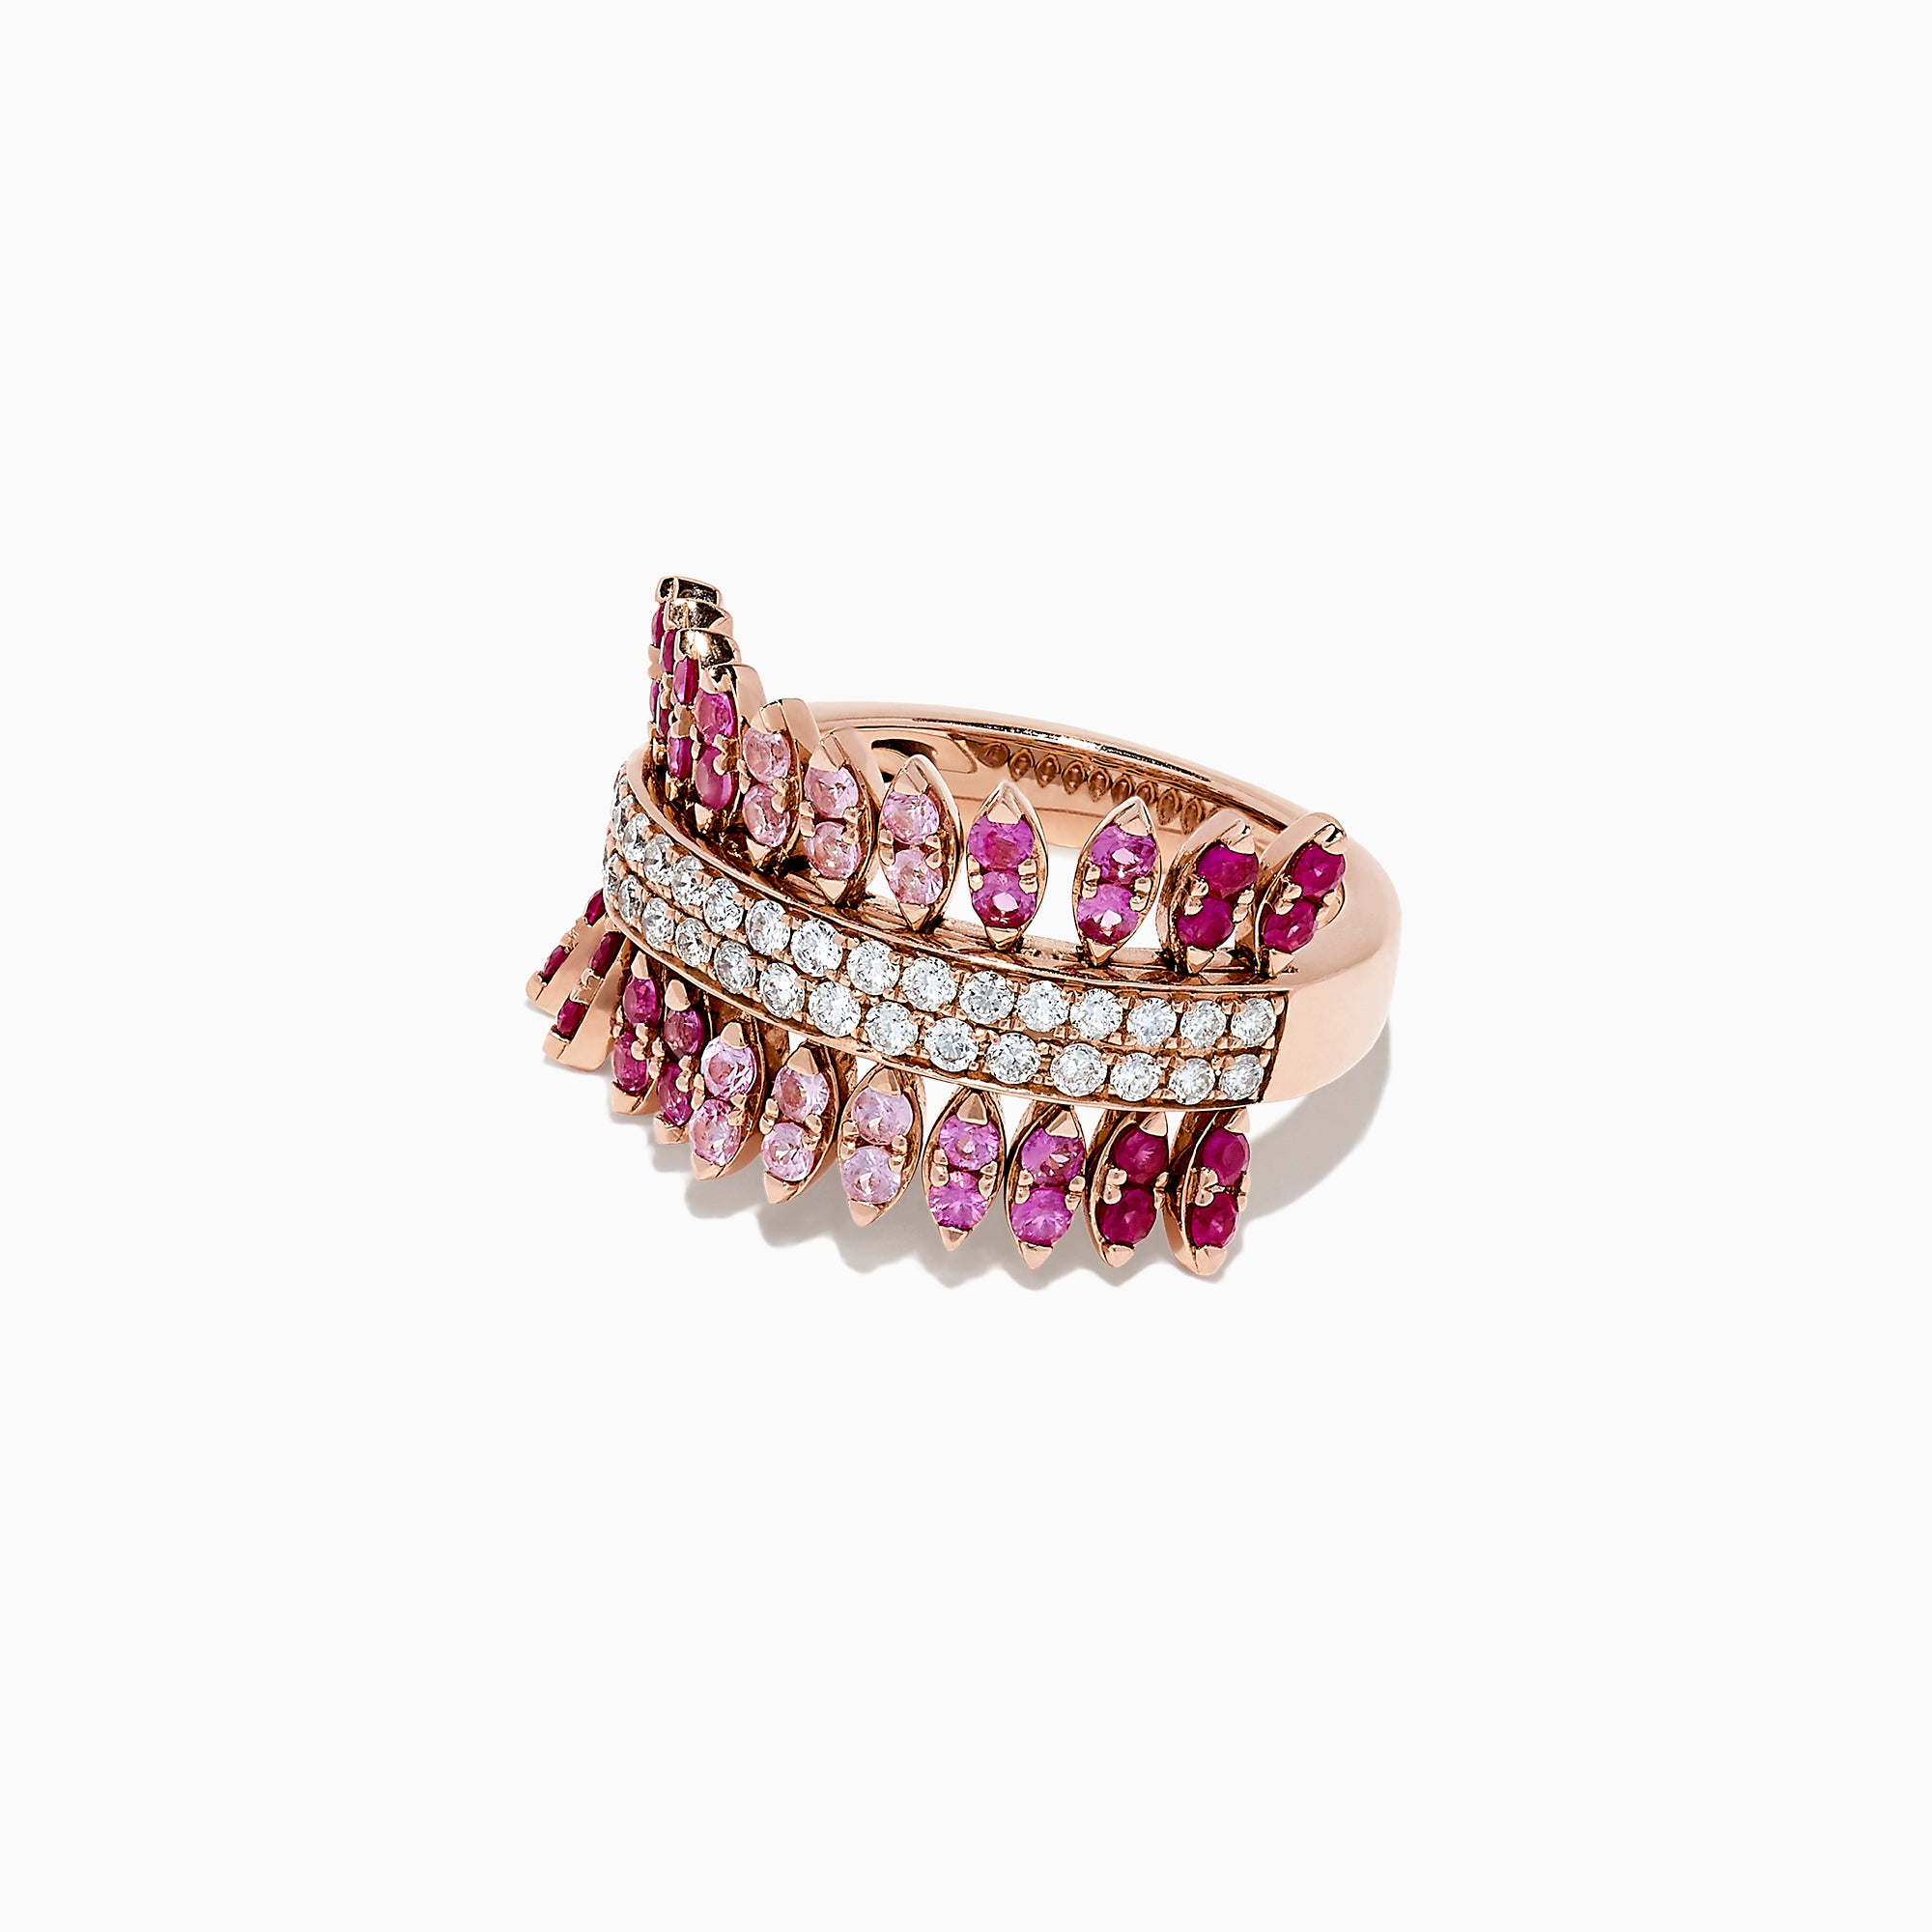 Effy 14K Rose Gold Pink Sapphire, Ruby and Diamond Ring, 1.66 TCW